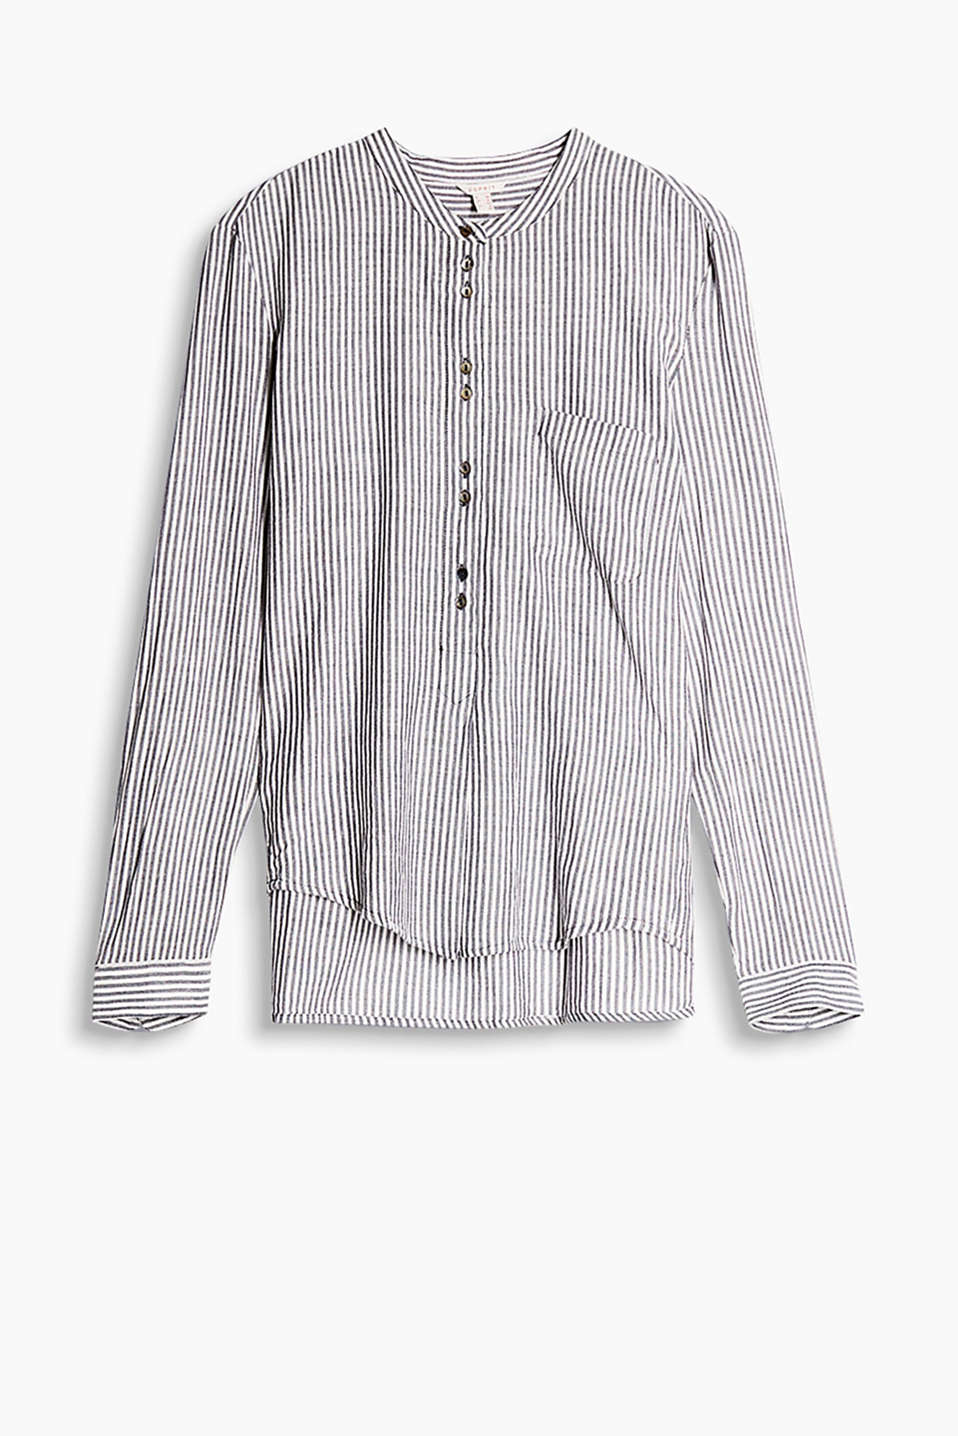 Airy shirt blouse with a stripe pattern, stand-up collar and long button placket